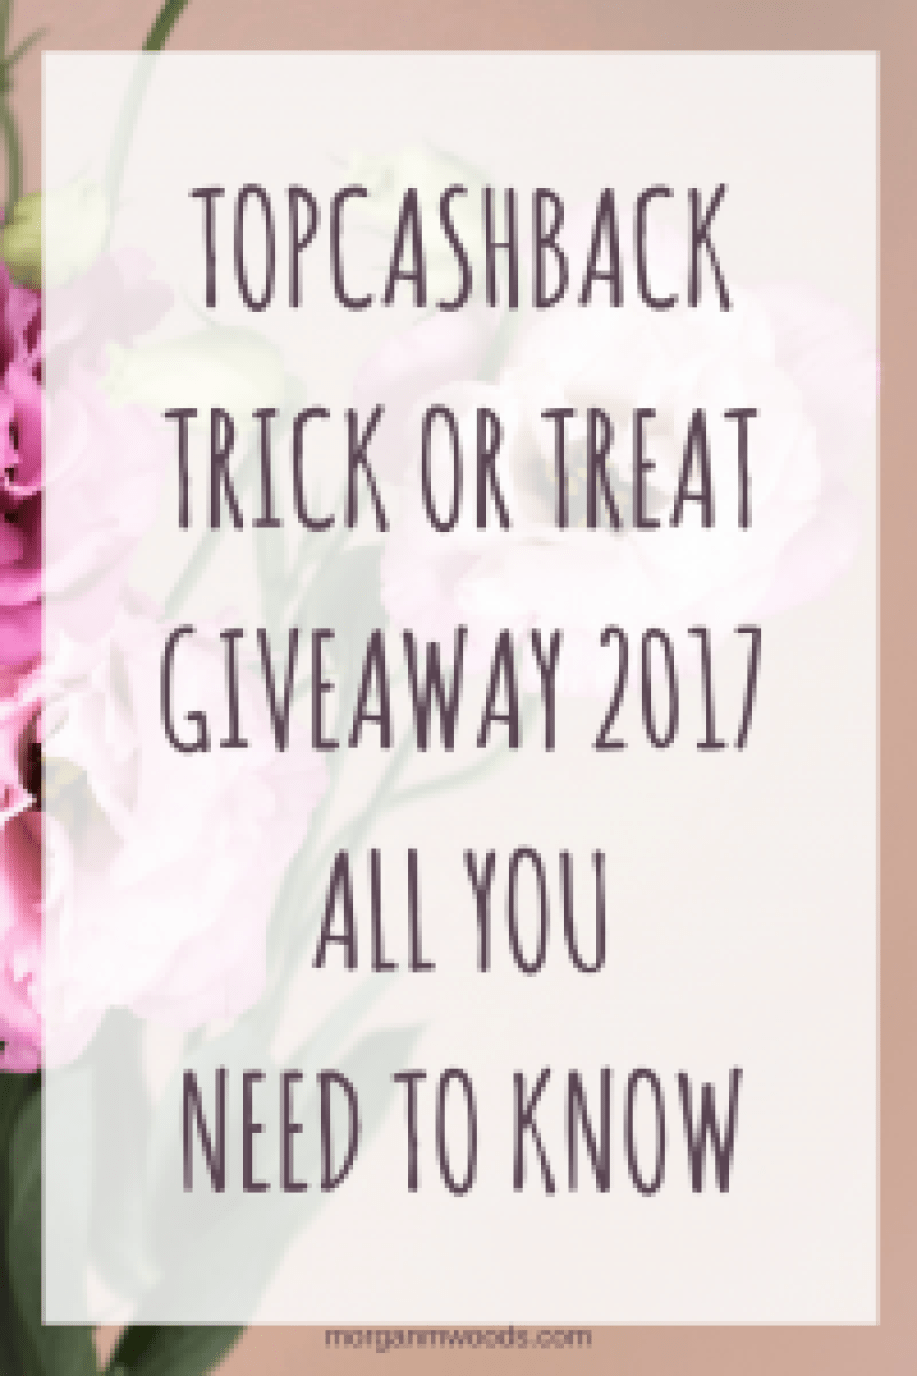 Topcashback Trick or Treat Giveaway 2017 all you need to know